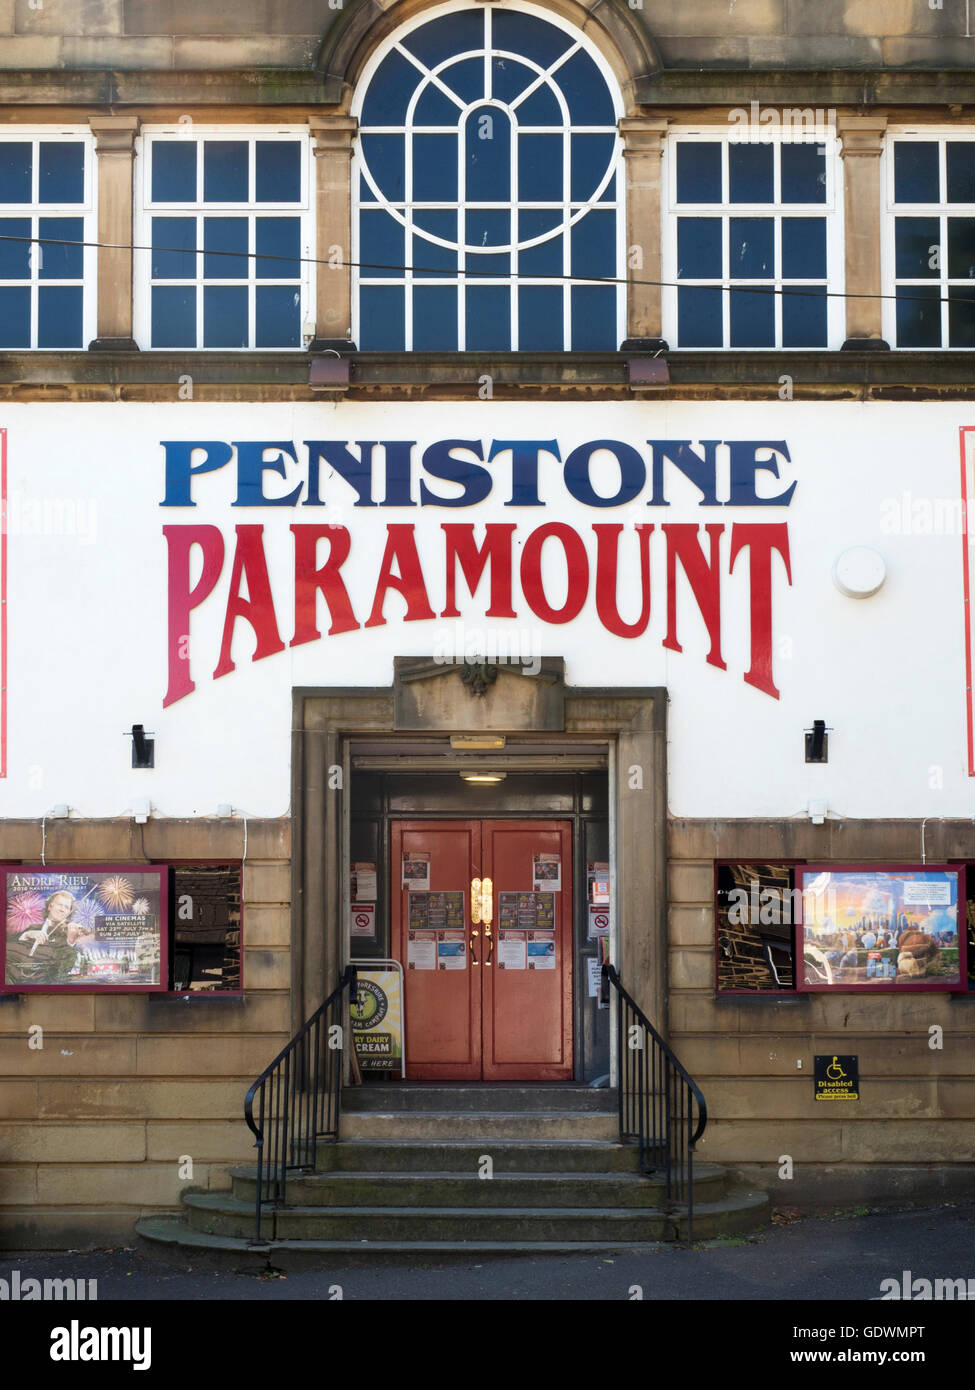 Penistone Paramount Community Cinema and Theatre Penistone South Yorkshire England - Stock Image